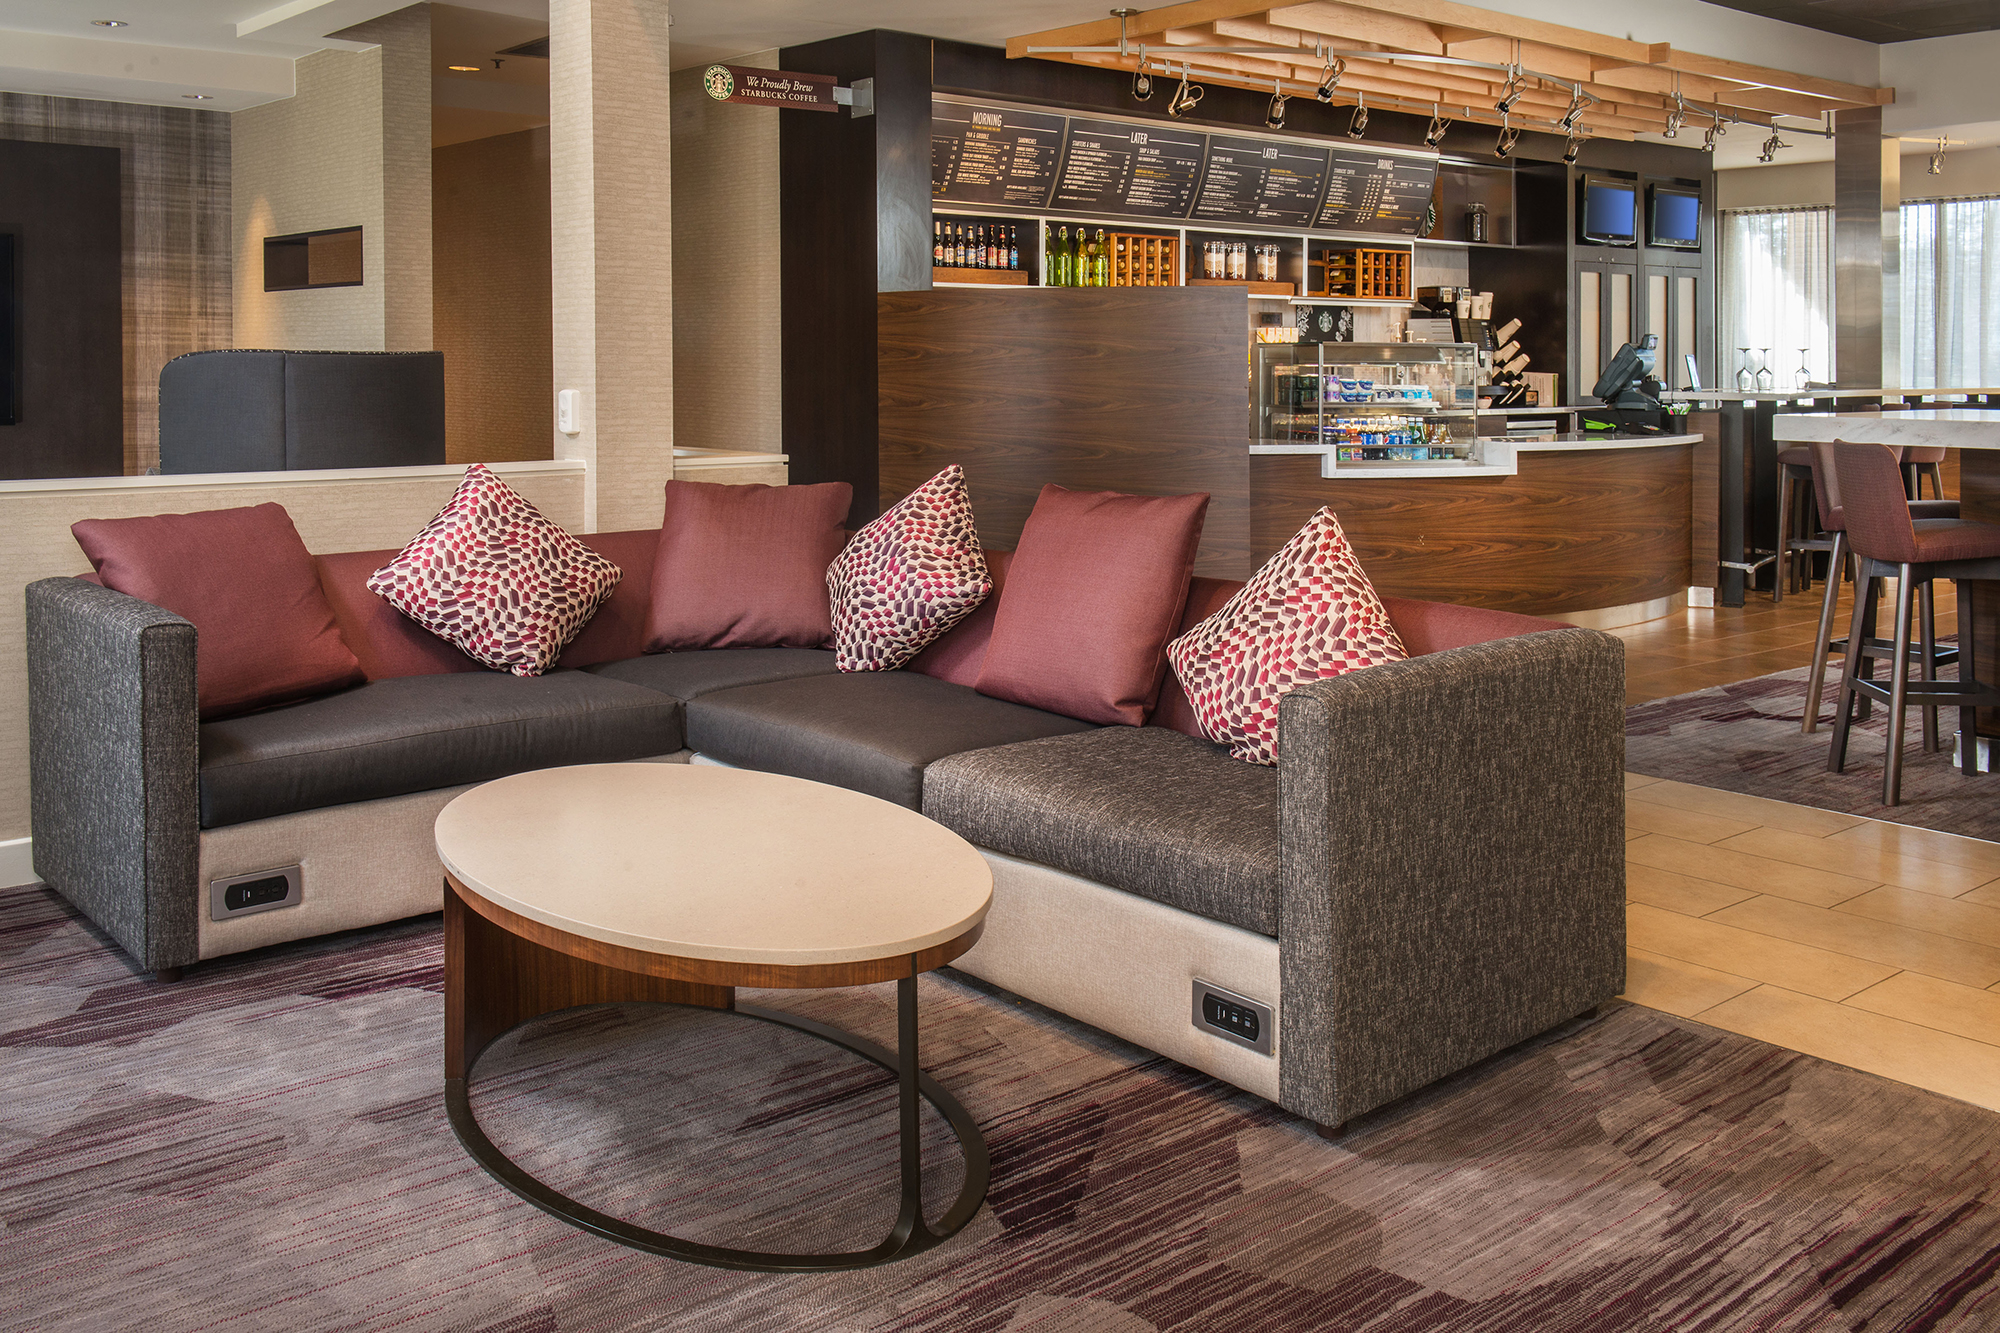 Courtyard by Marriott Dulles Airport Chantilly